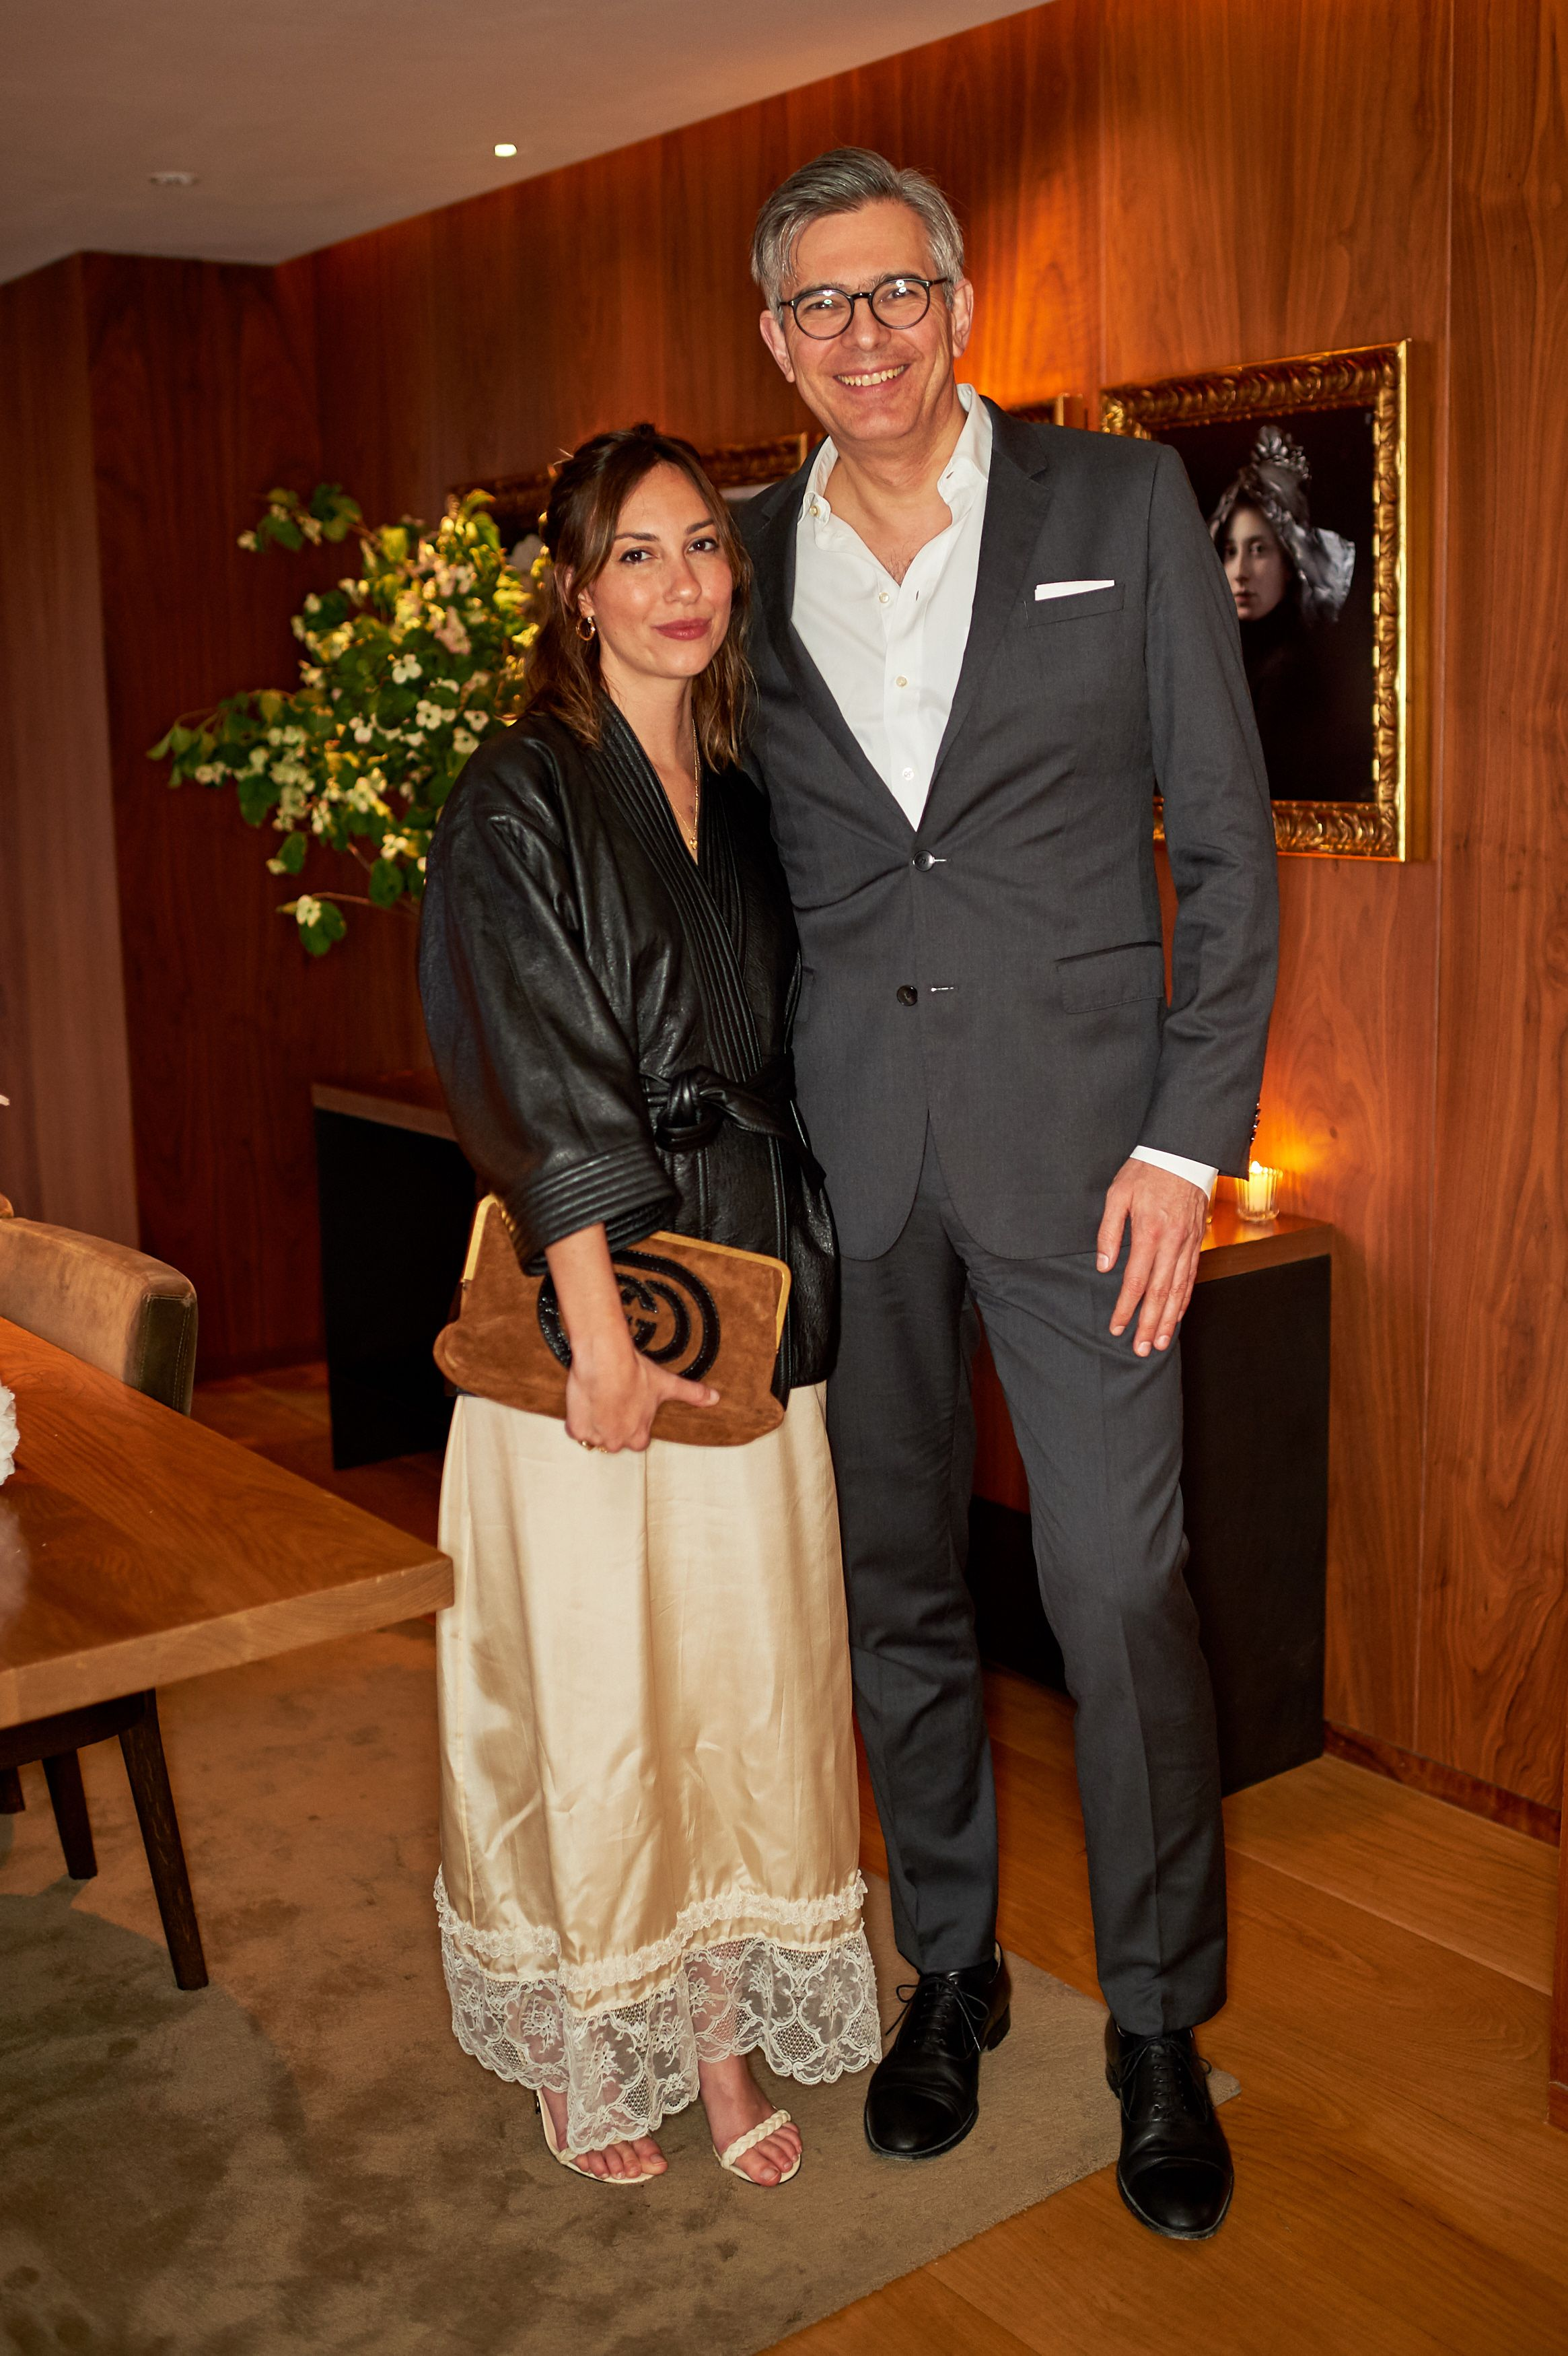 3d79cbee4b Gia Coppola and Michael Kliger at the launch event of THE ALBUM.  #mytheresaTHEALBUM #mytheresa